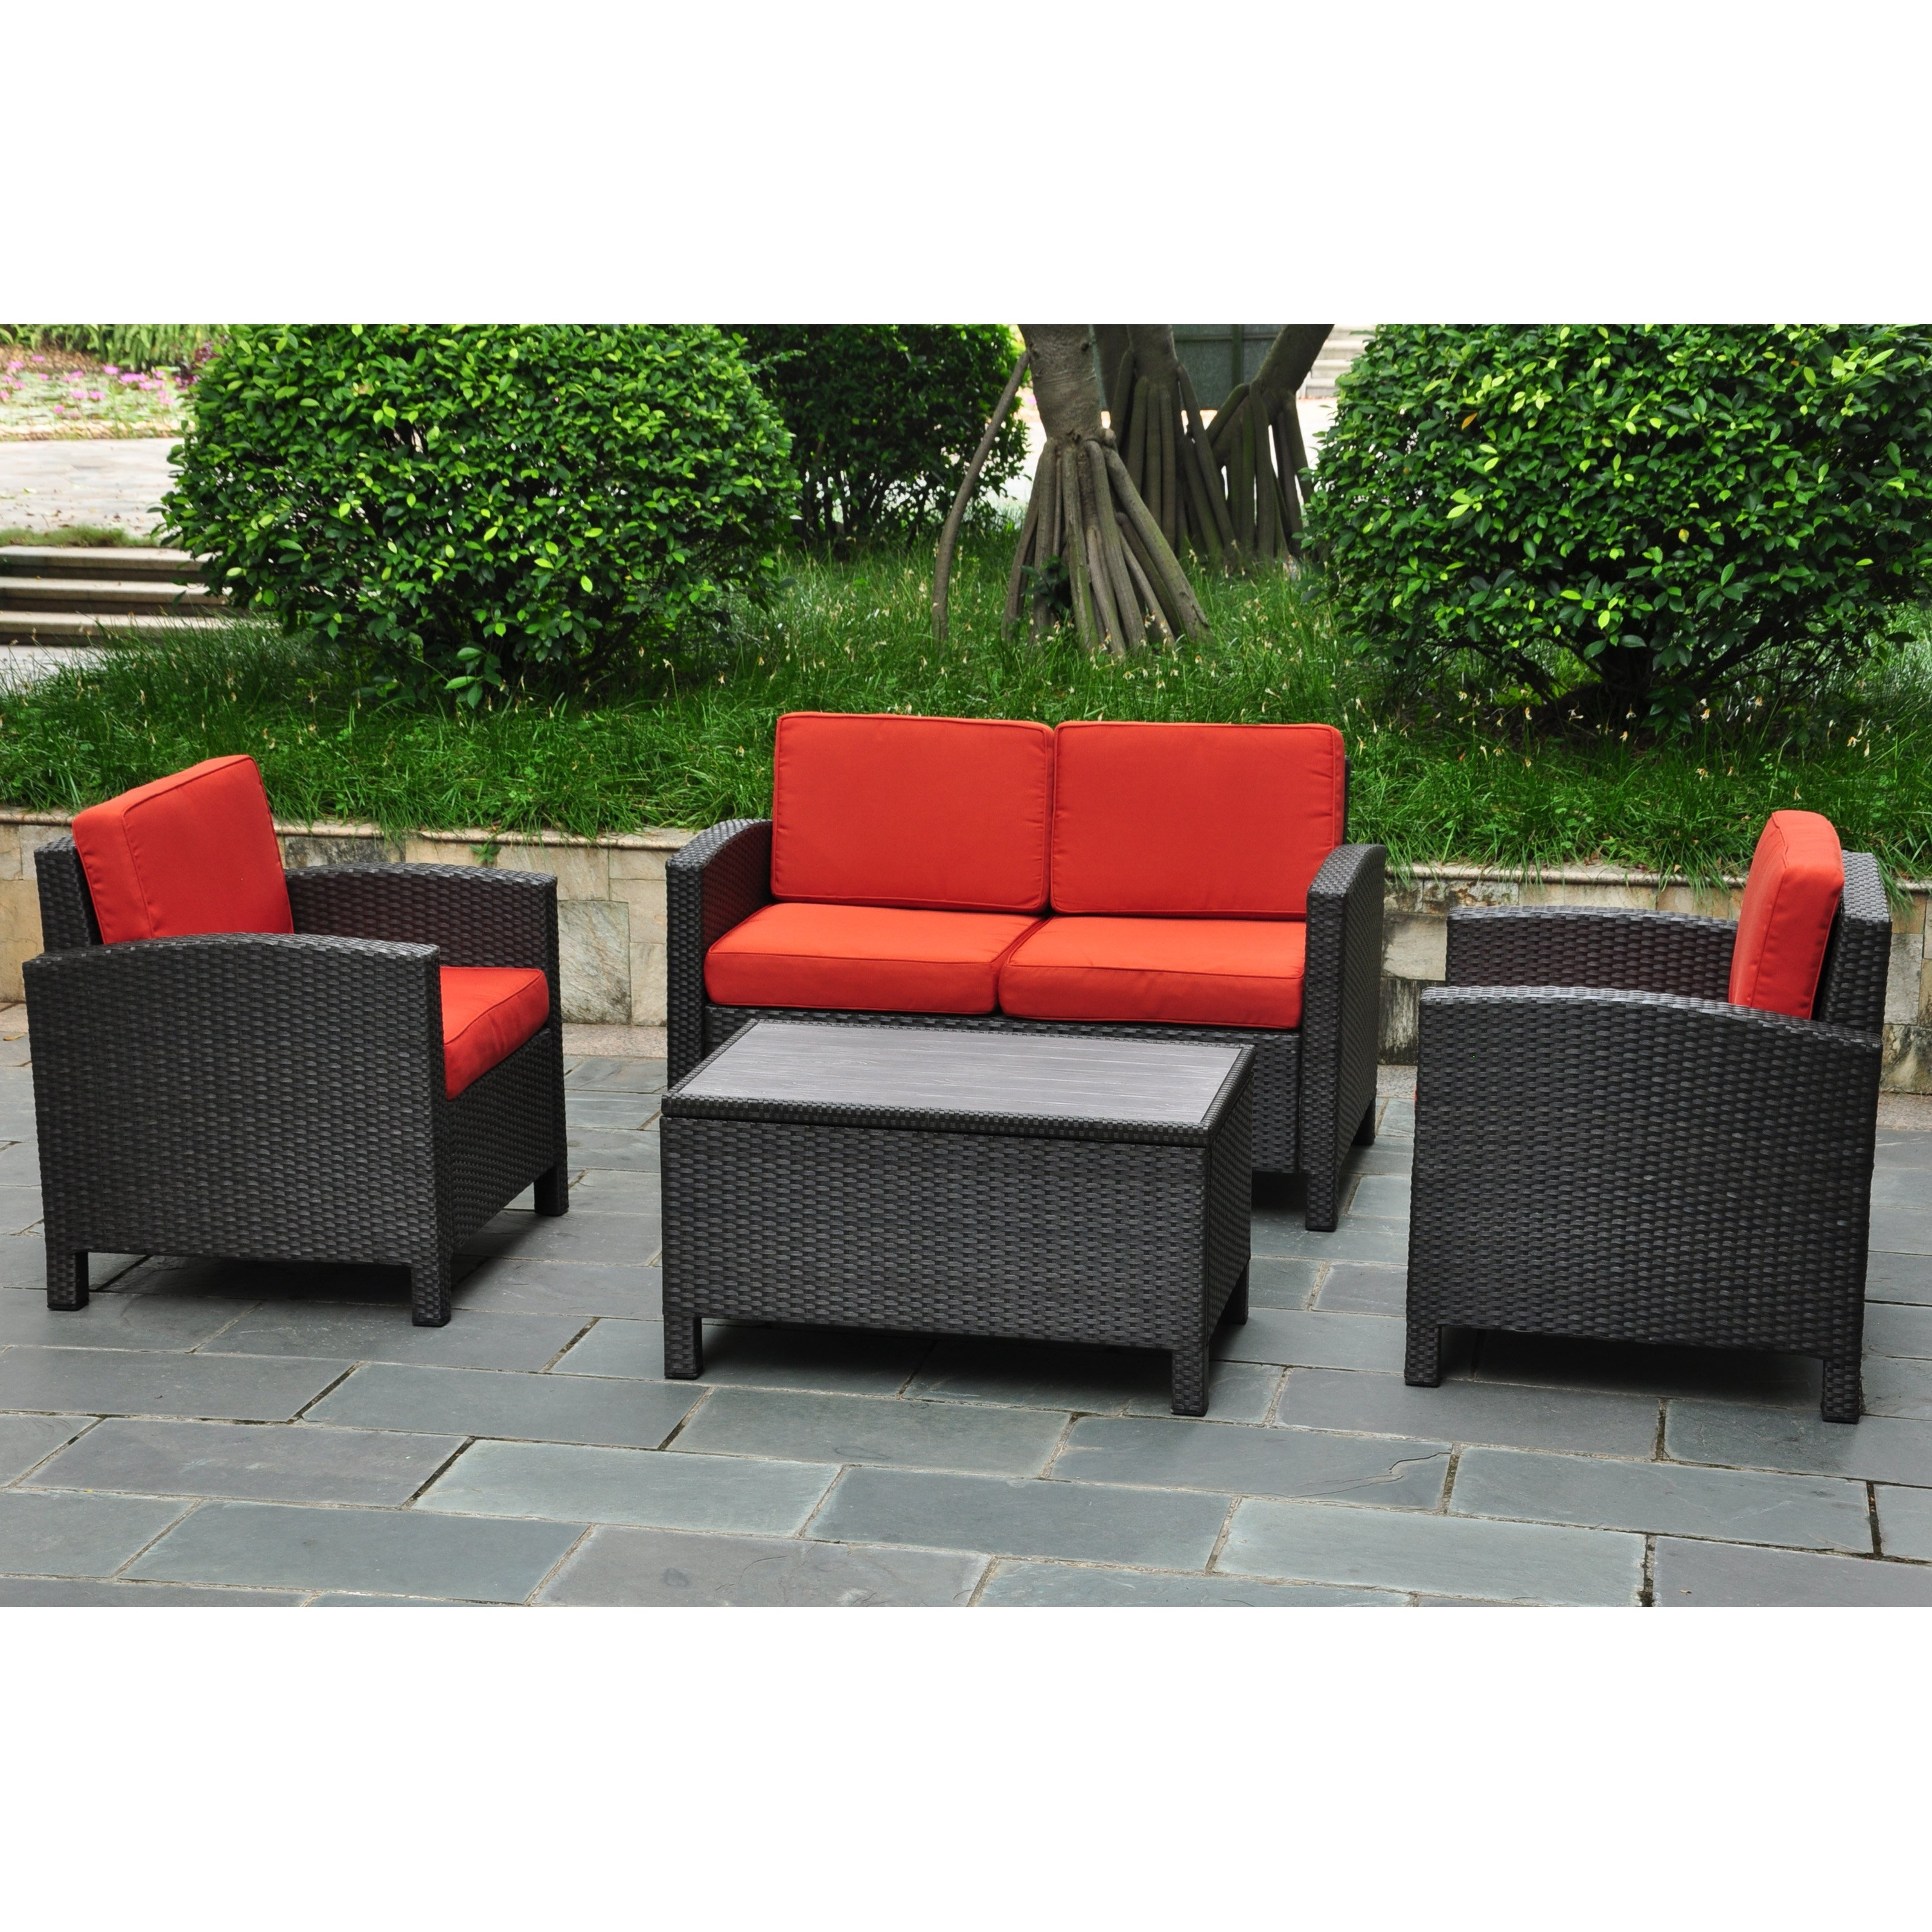 Favorite Patio Conversation Set With Storage Pertaining To International Caravan Barcelona Resin Wicker Outdoor Patio Set With (View 5 of 20)